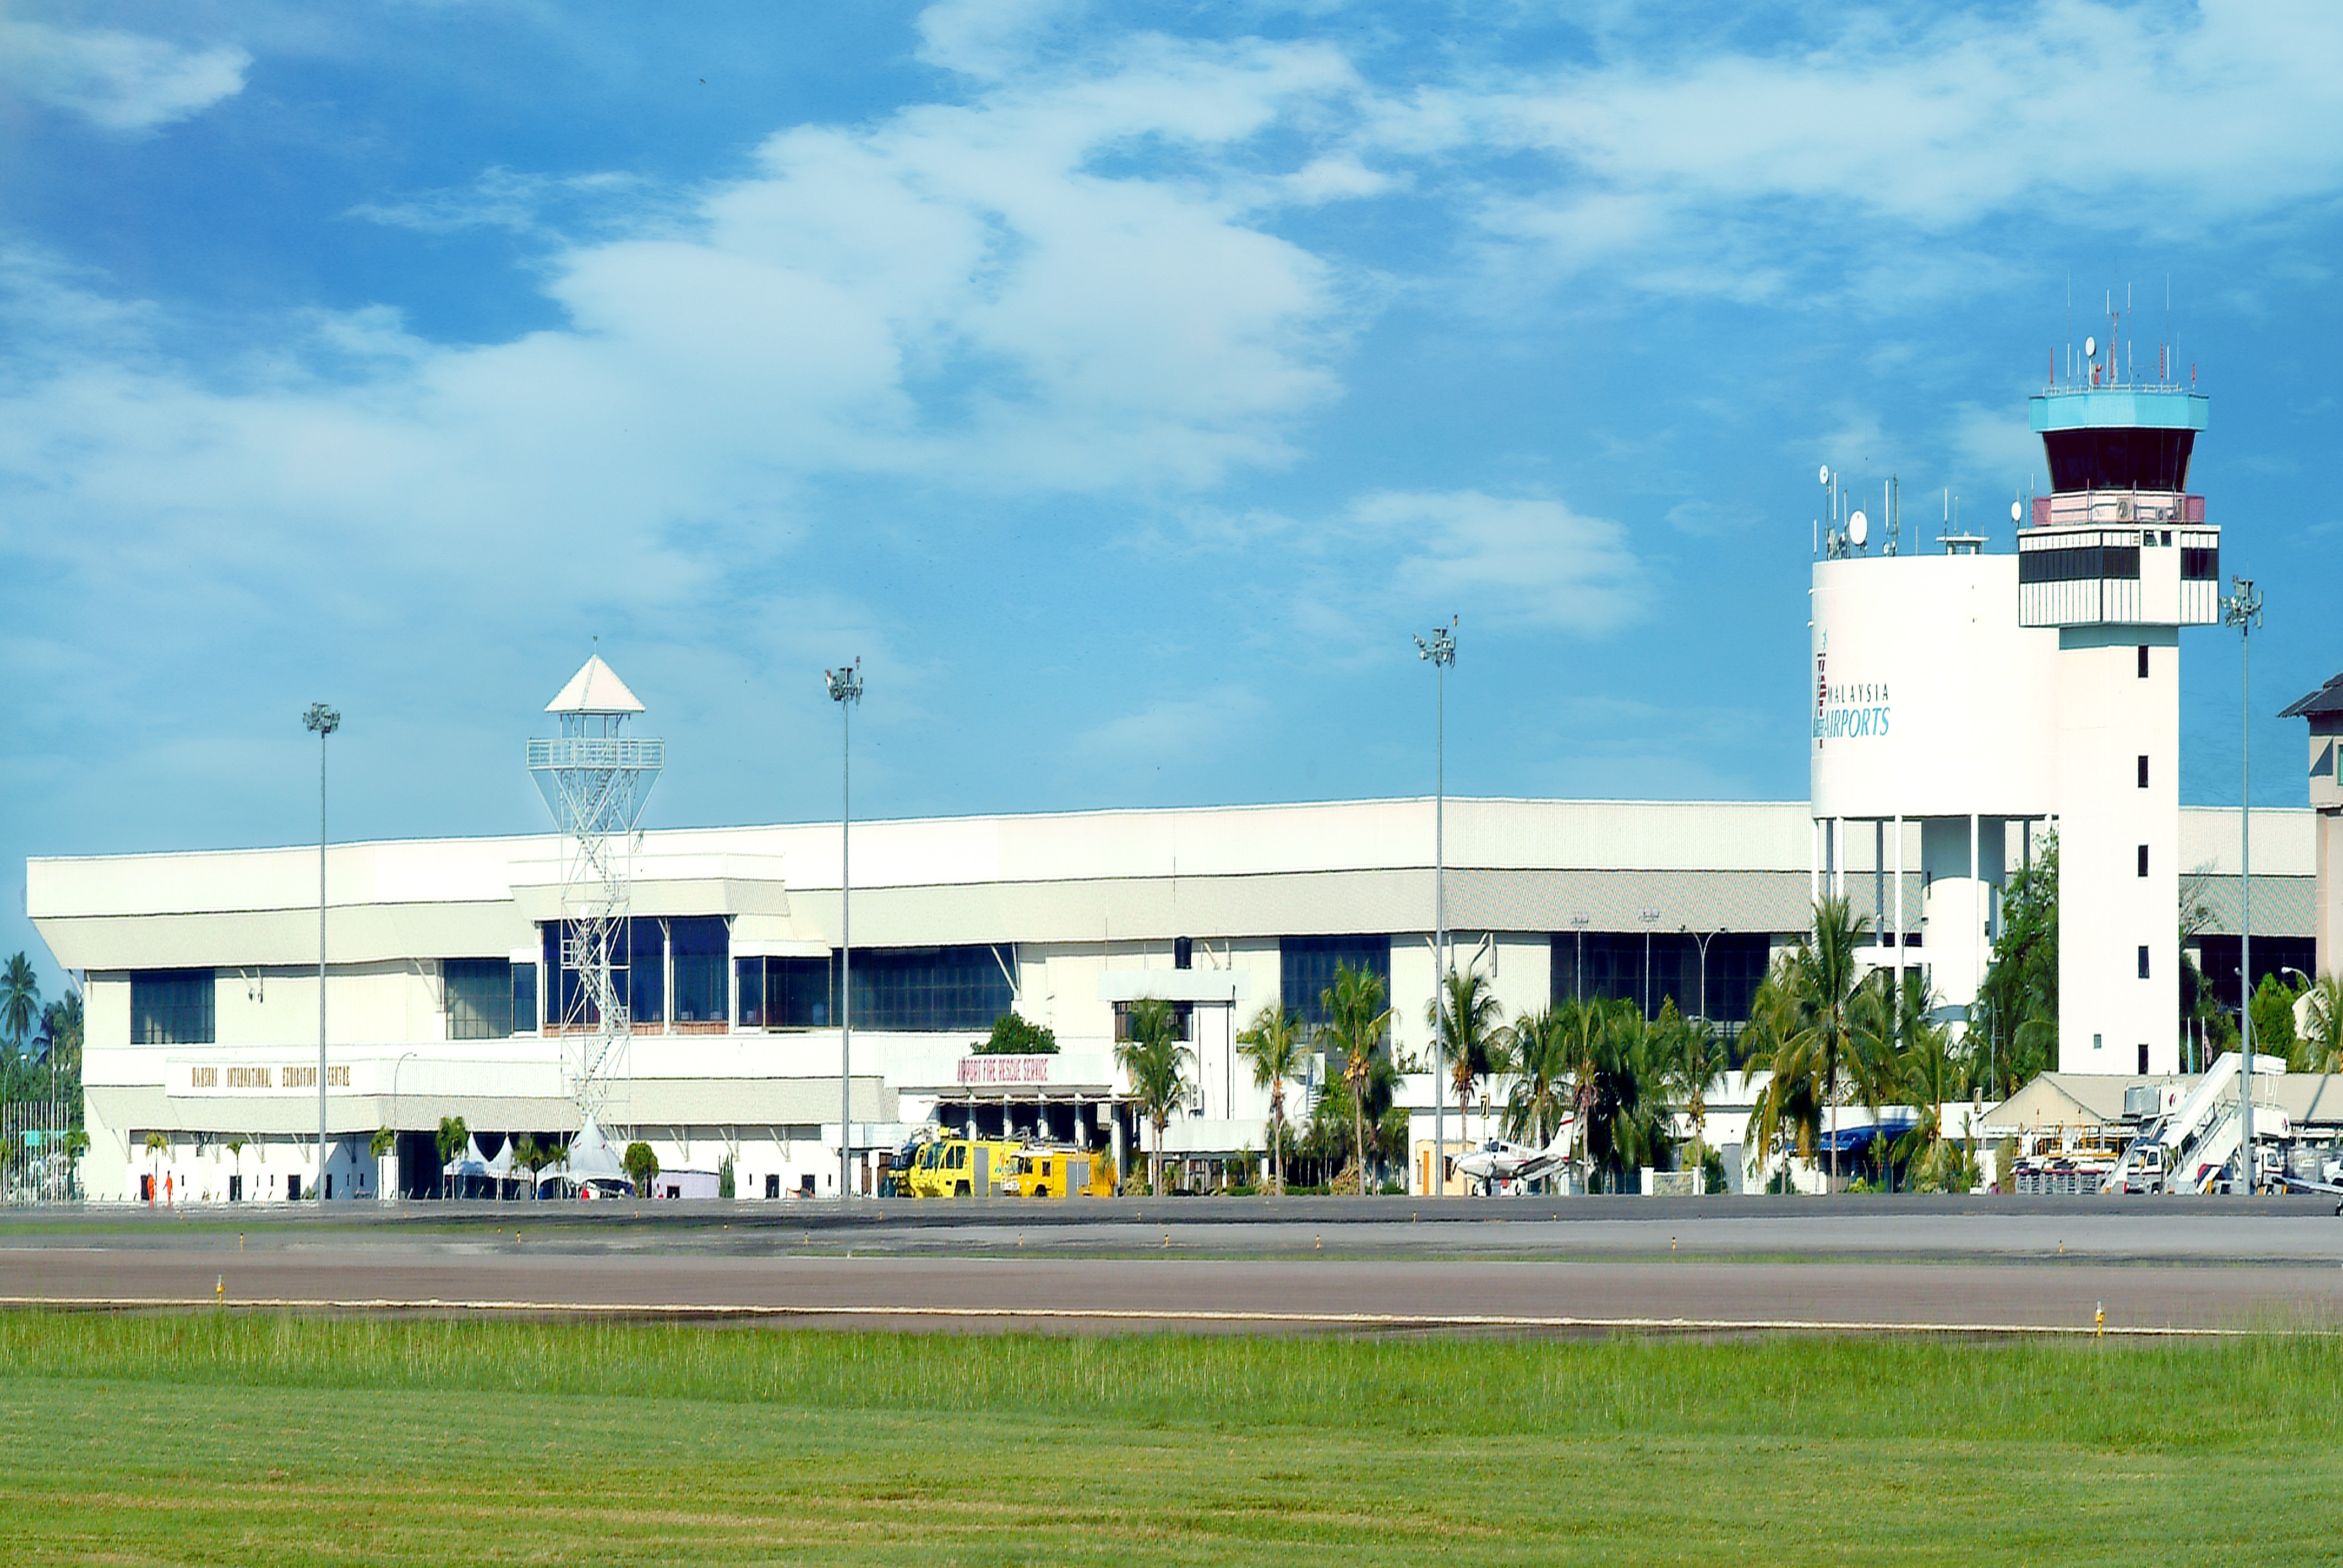 Extension and Renovation of Langkawi International Airport Terminal Building